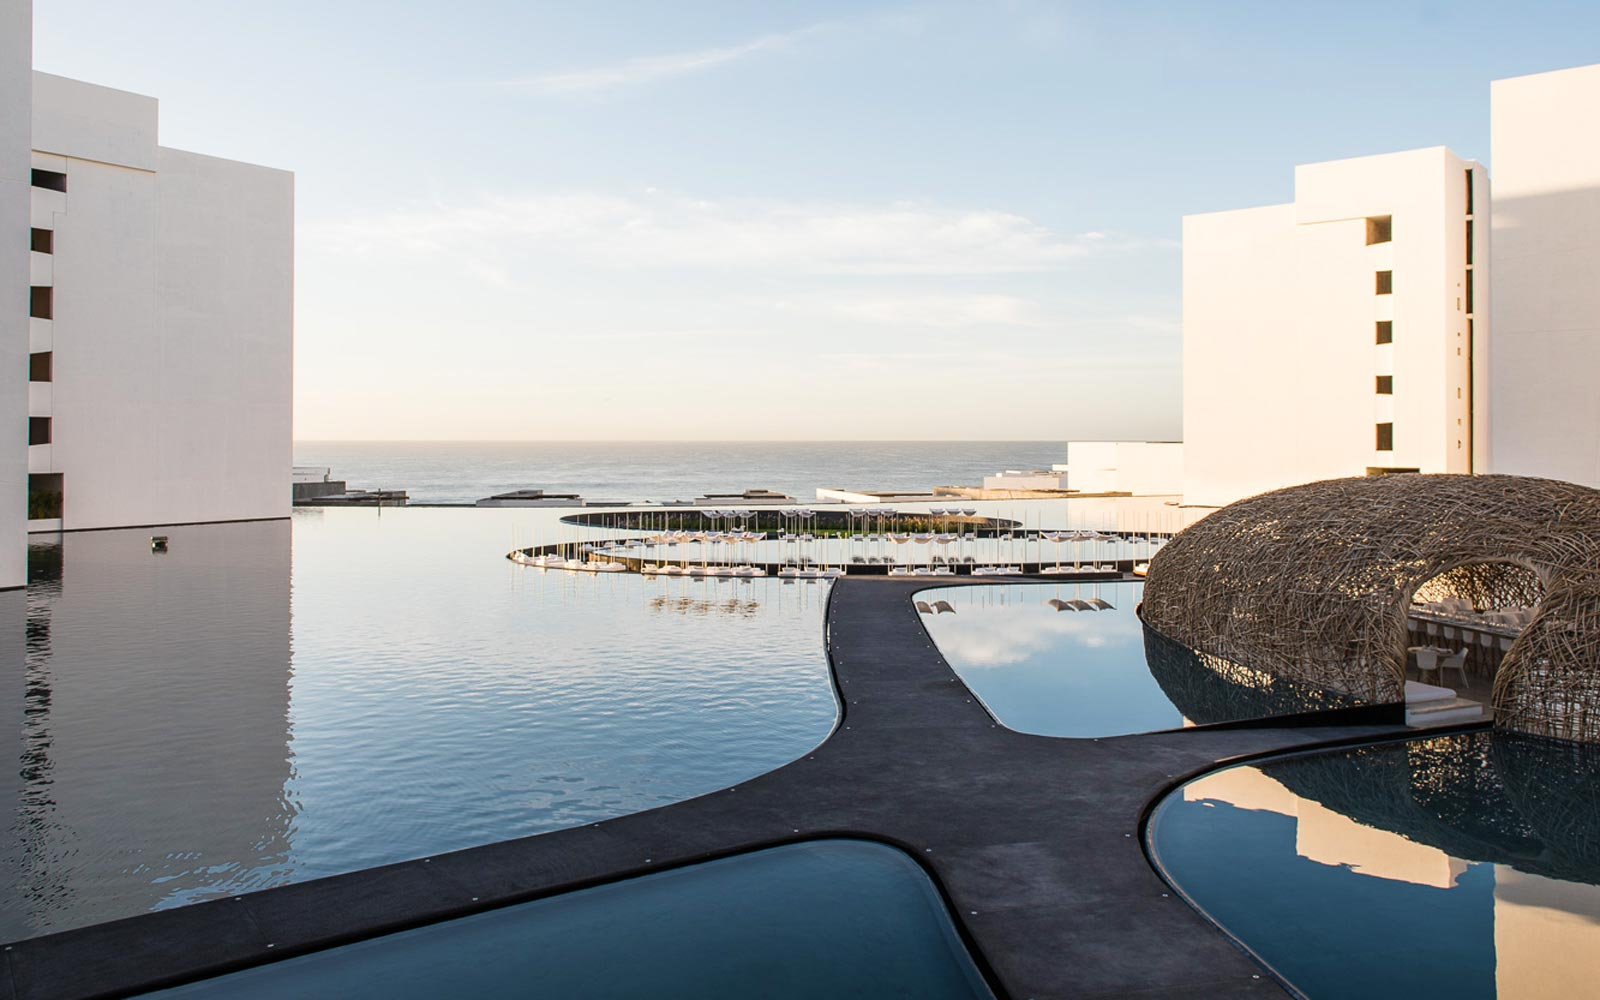 9 Reasons to Love Hotels Now